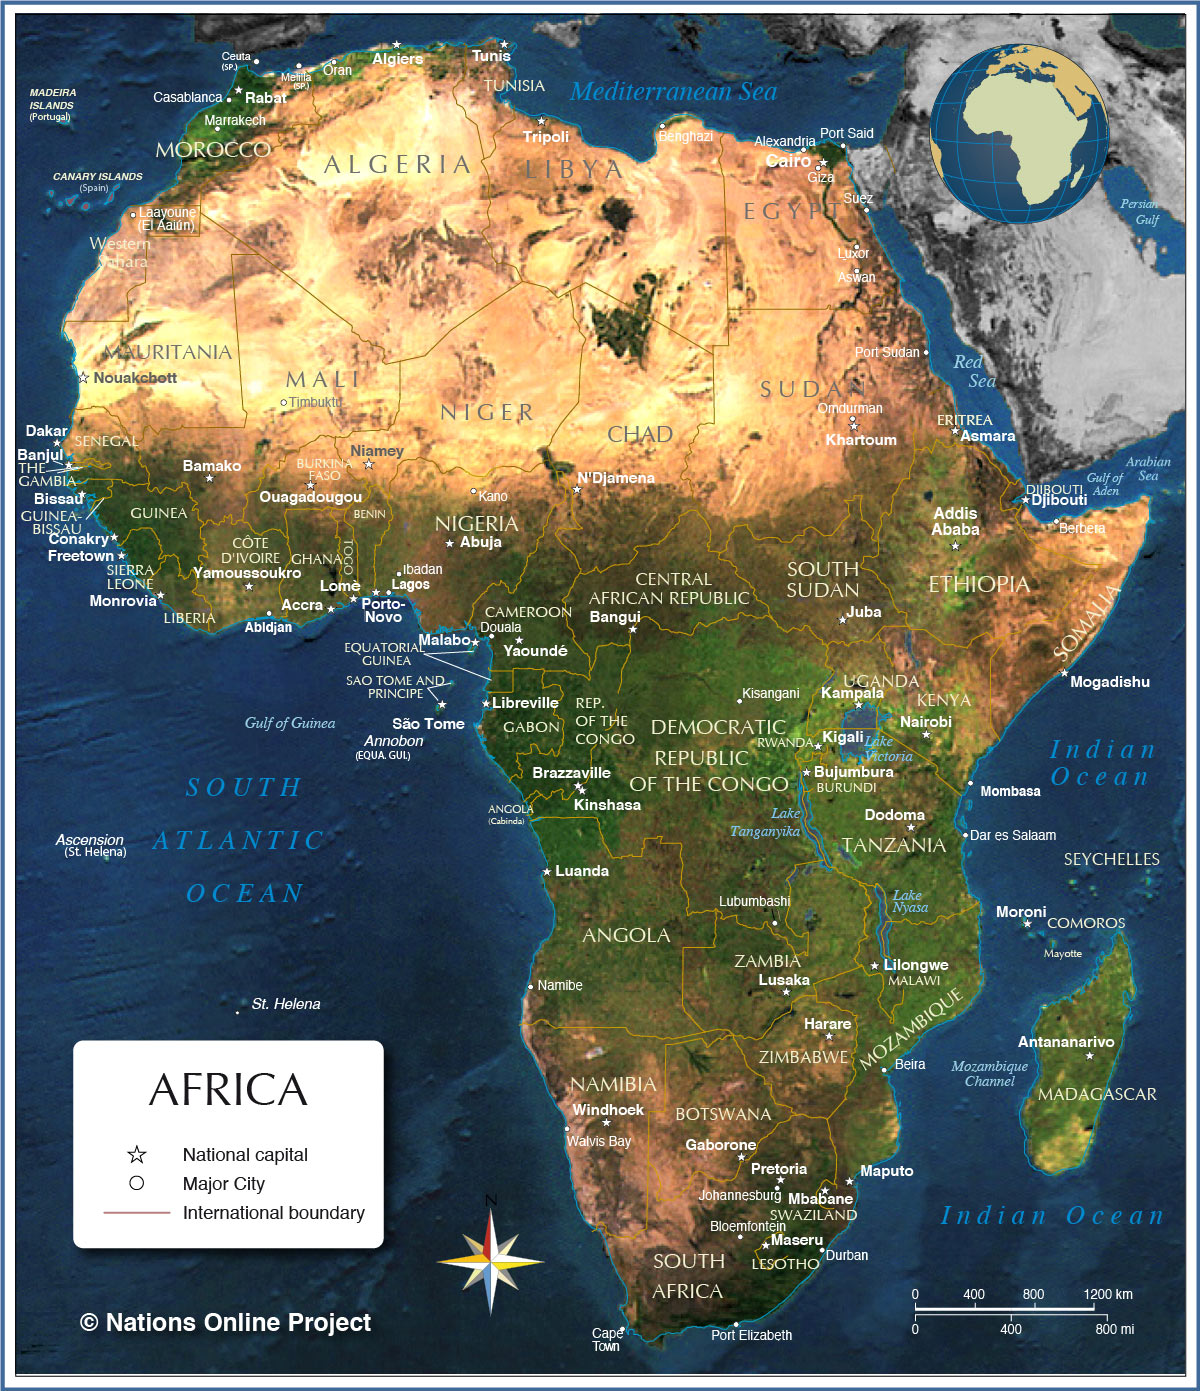 Show Me A Map Of Africa Map of Africa   Countries of Africa   Nations Online Project